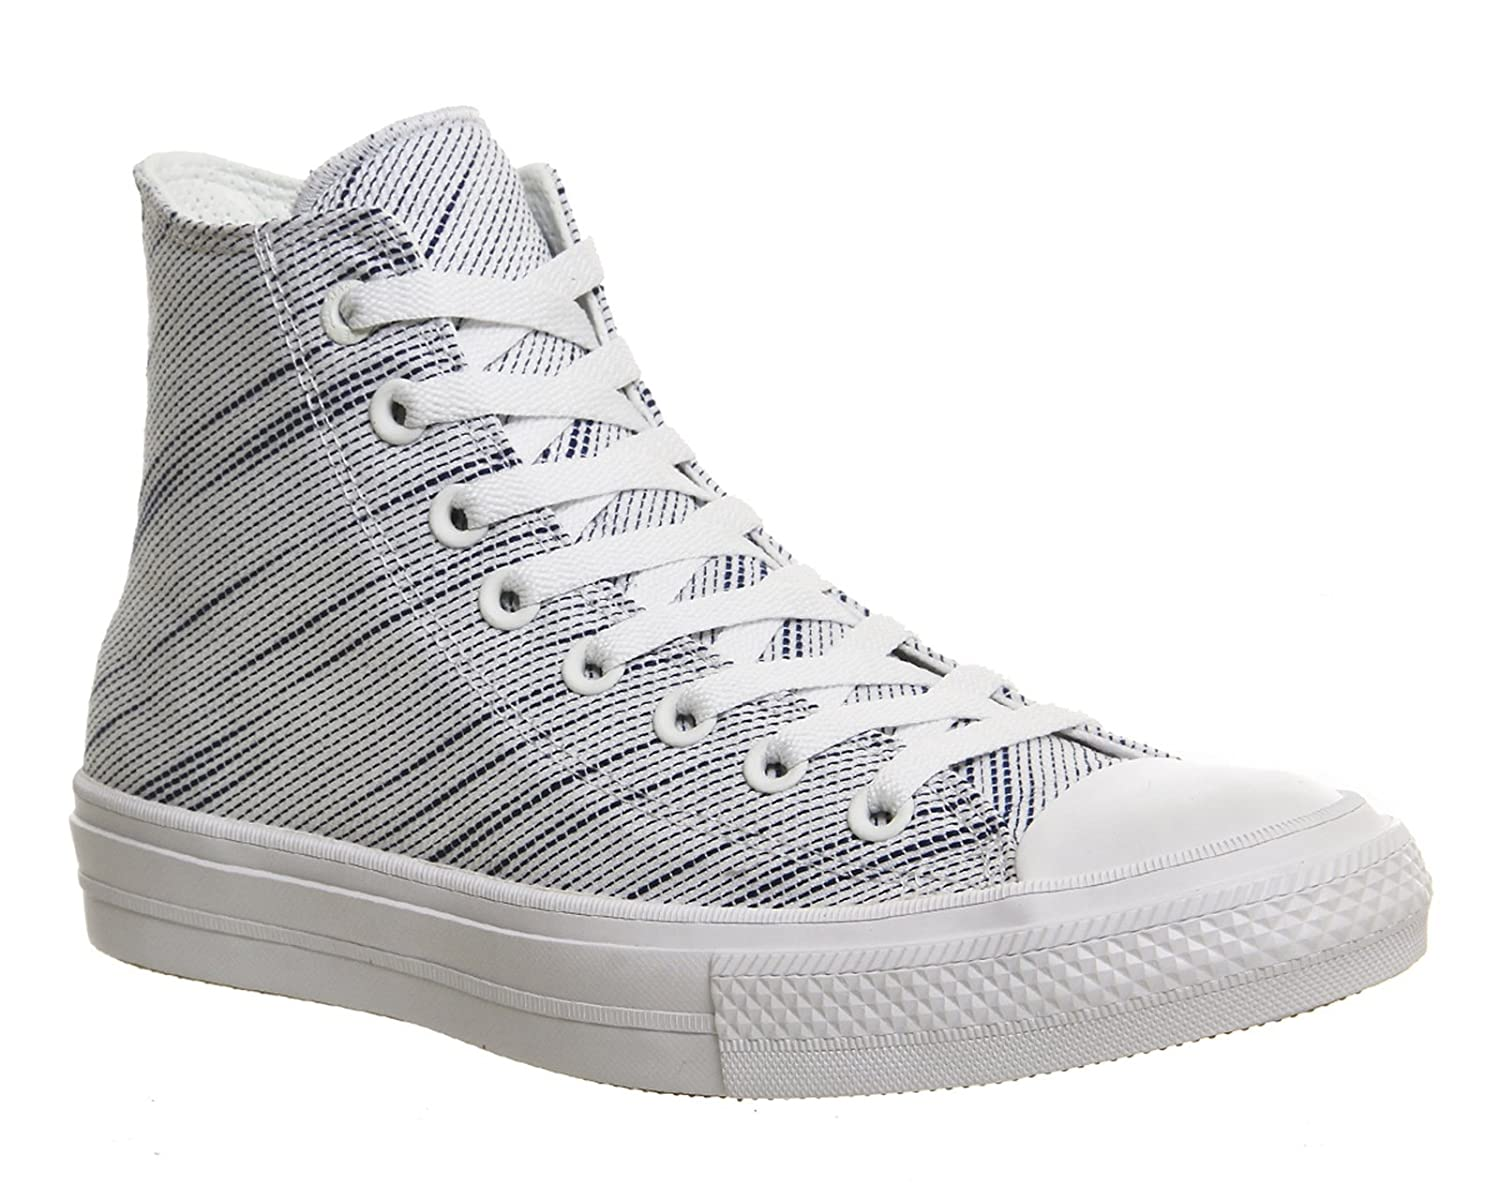 be8cc74d586d ... discount code for amazon converse chuck taylor ii all star knit hi top  sneaker white blue